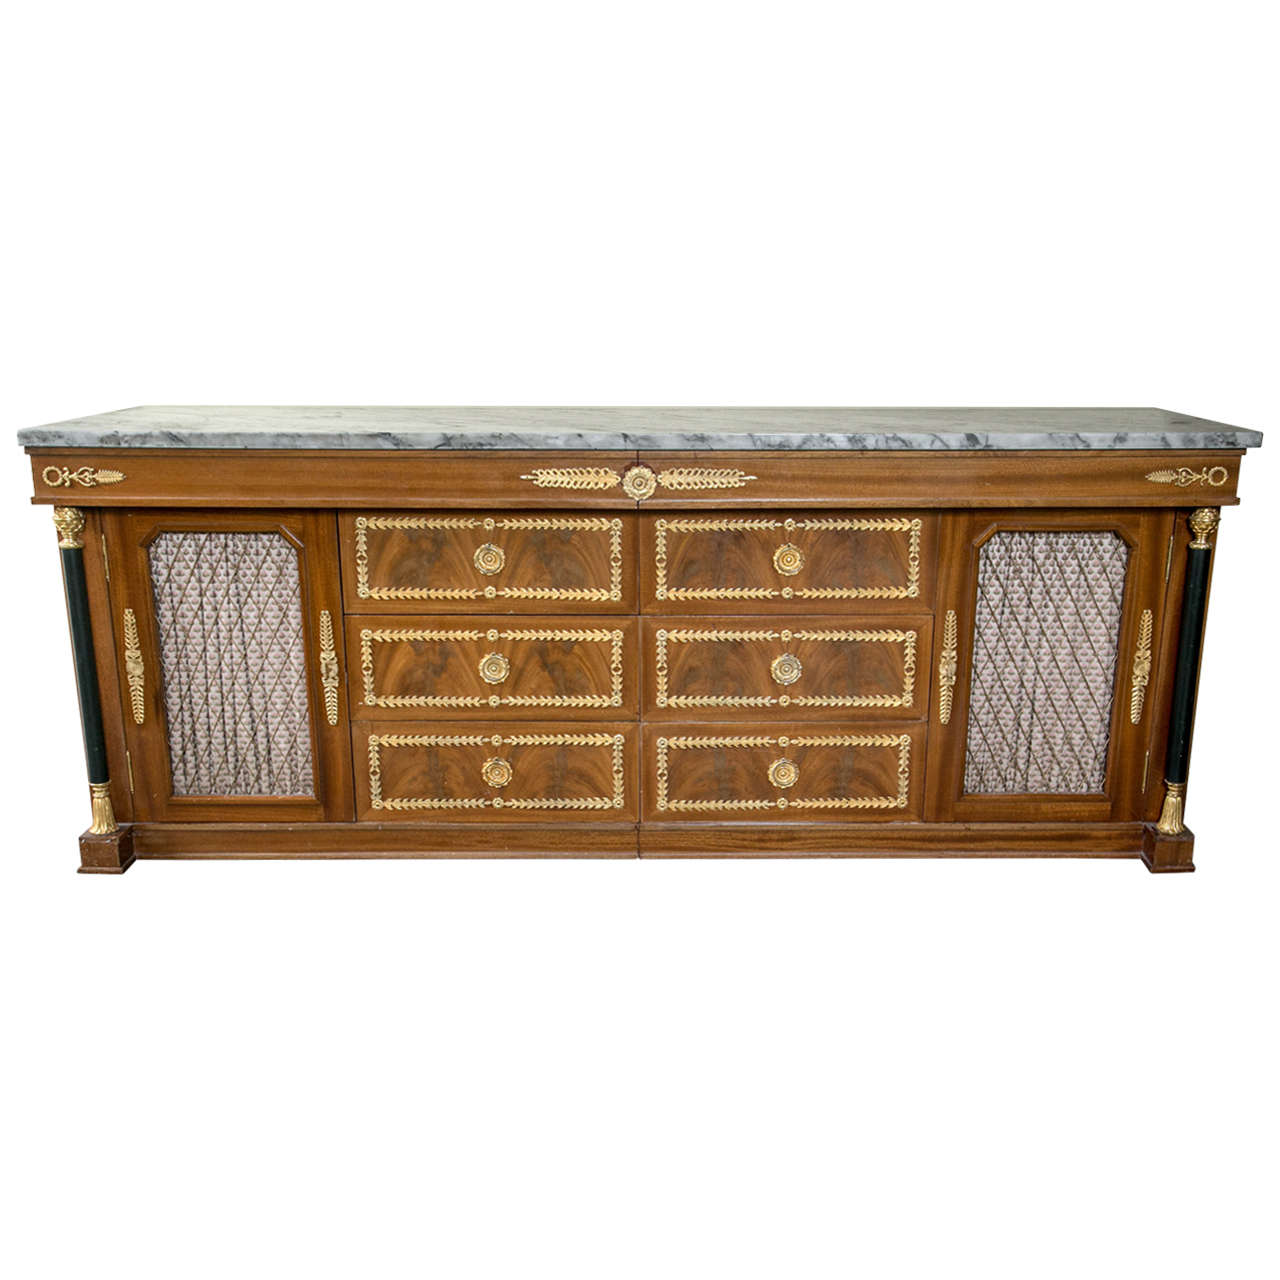 Palatial Empire Style Sideboard or Console Table Finely Bronze Mounted